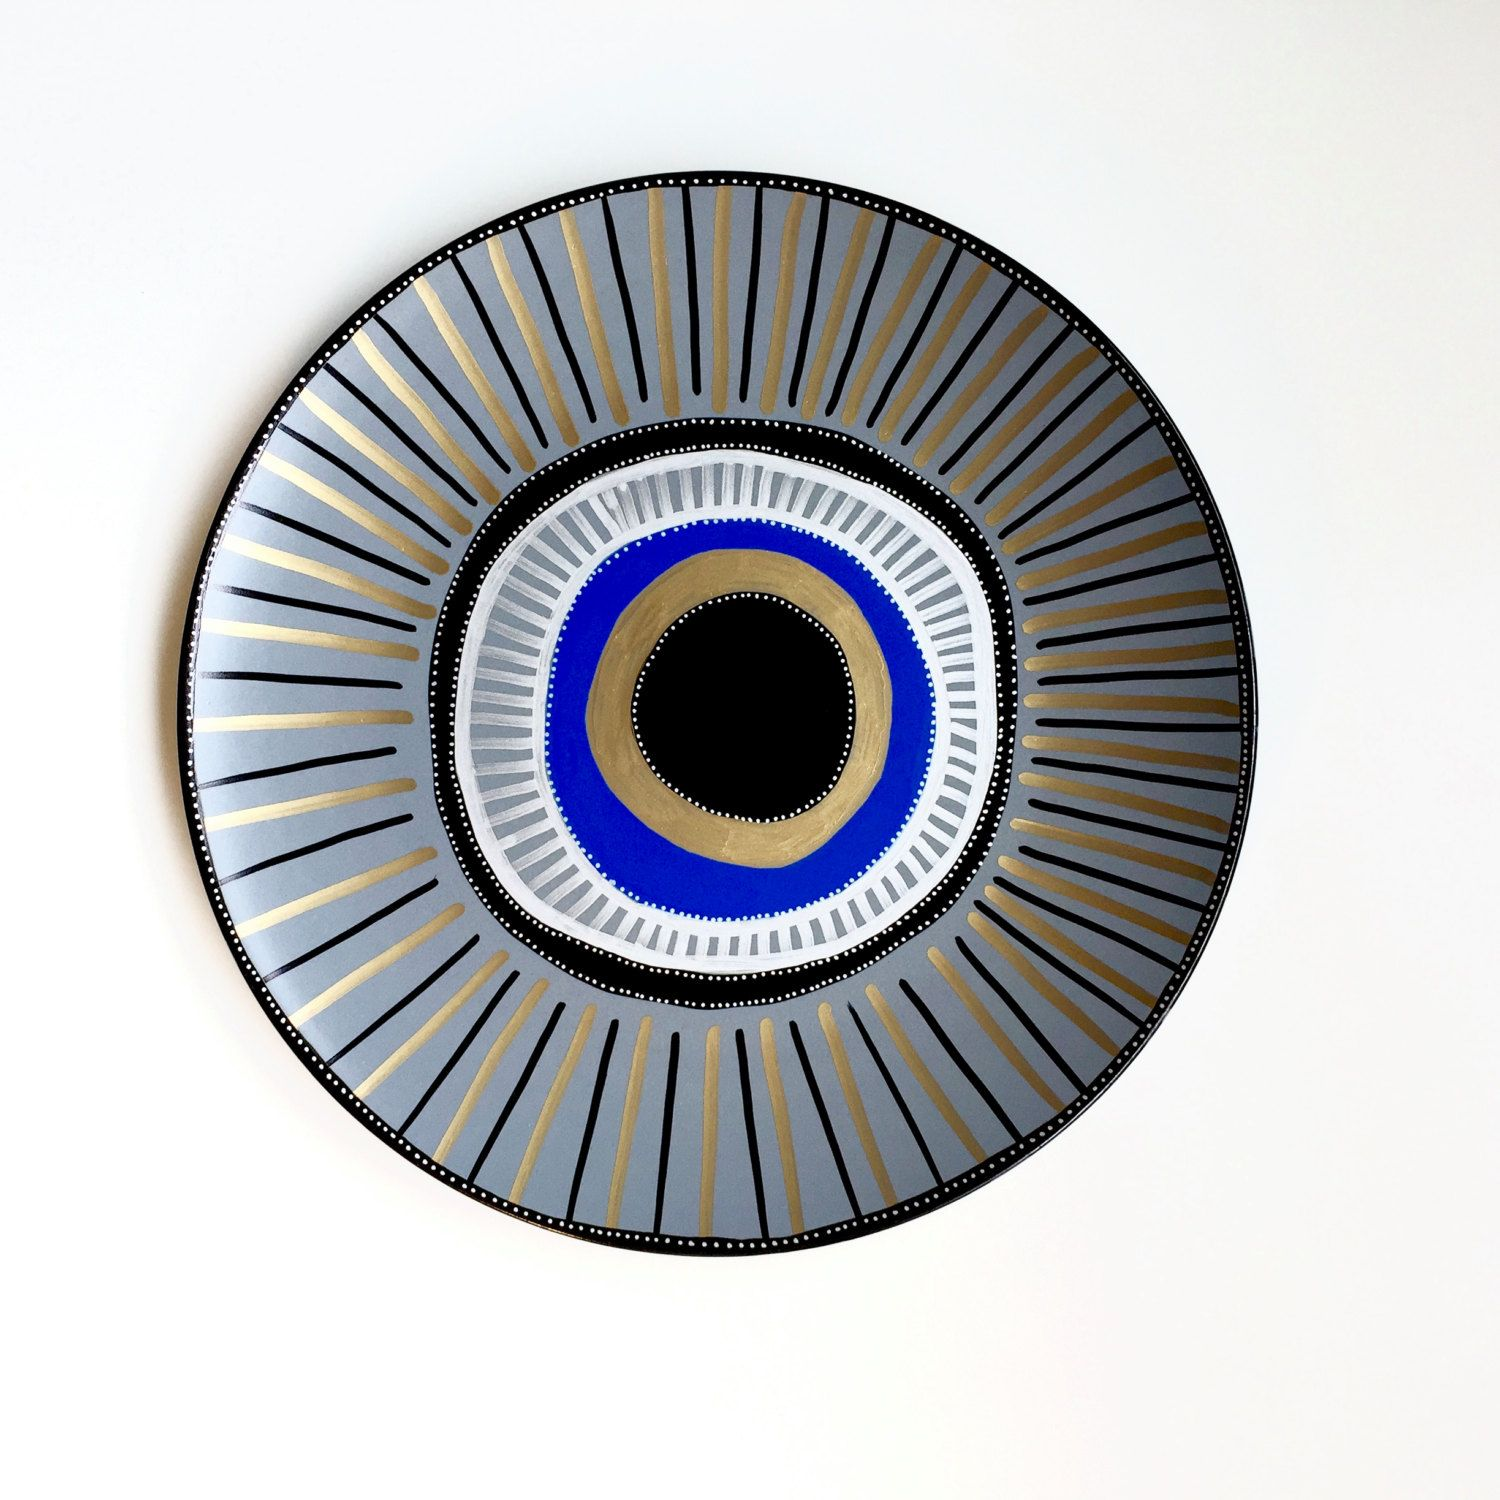 Evil Eye Decor - Wall Evil Eye - Evil Eye Wall Art - Porcelain Evil Eye - Wall Hanging - Golden Evil Eye Decor - Blue Evil Eye Decor - by biancafreitas on Etsy